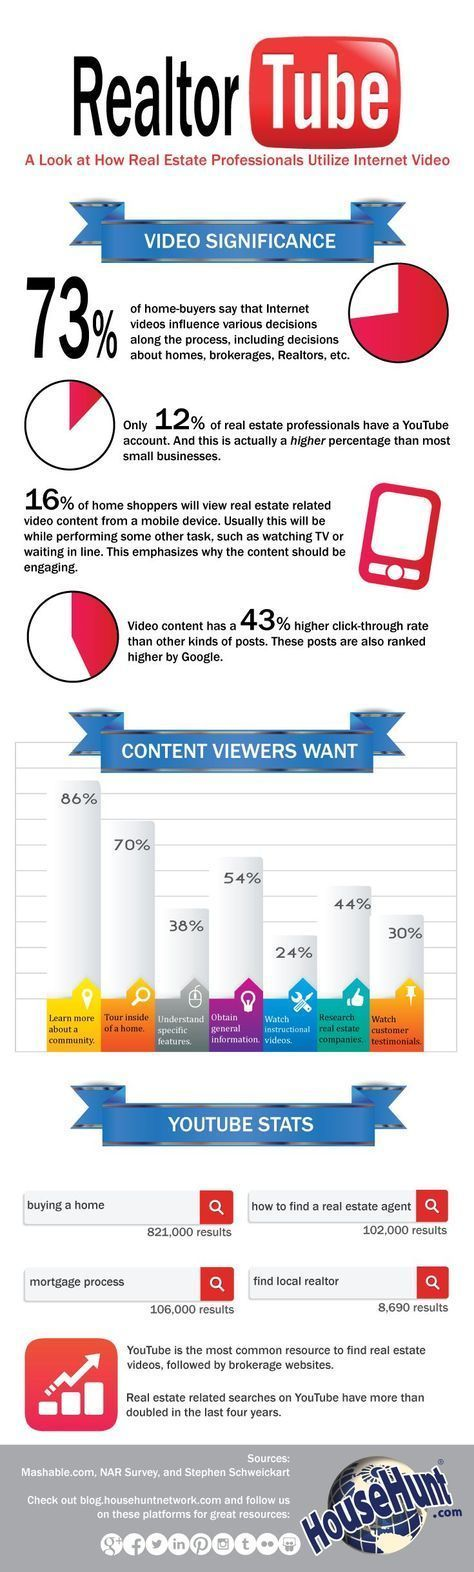 Real Estate #Video Marketing #Infographic : http://www.blog.househuntnetwork.com/real-estate-video-marketing/ #realestatemarketingideas